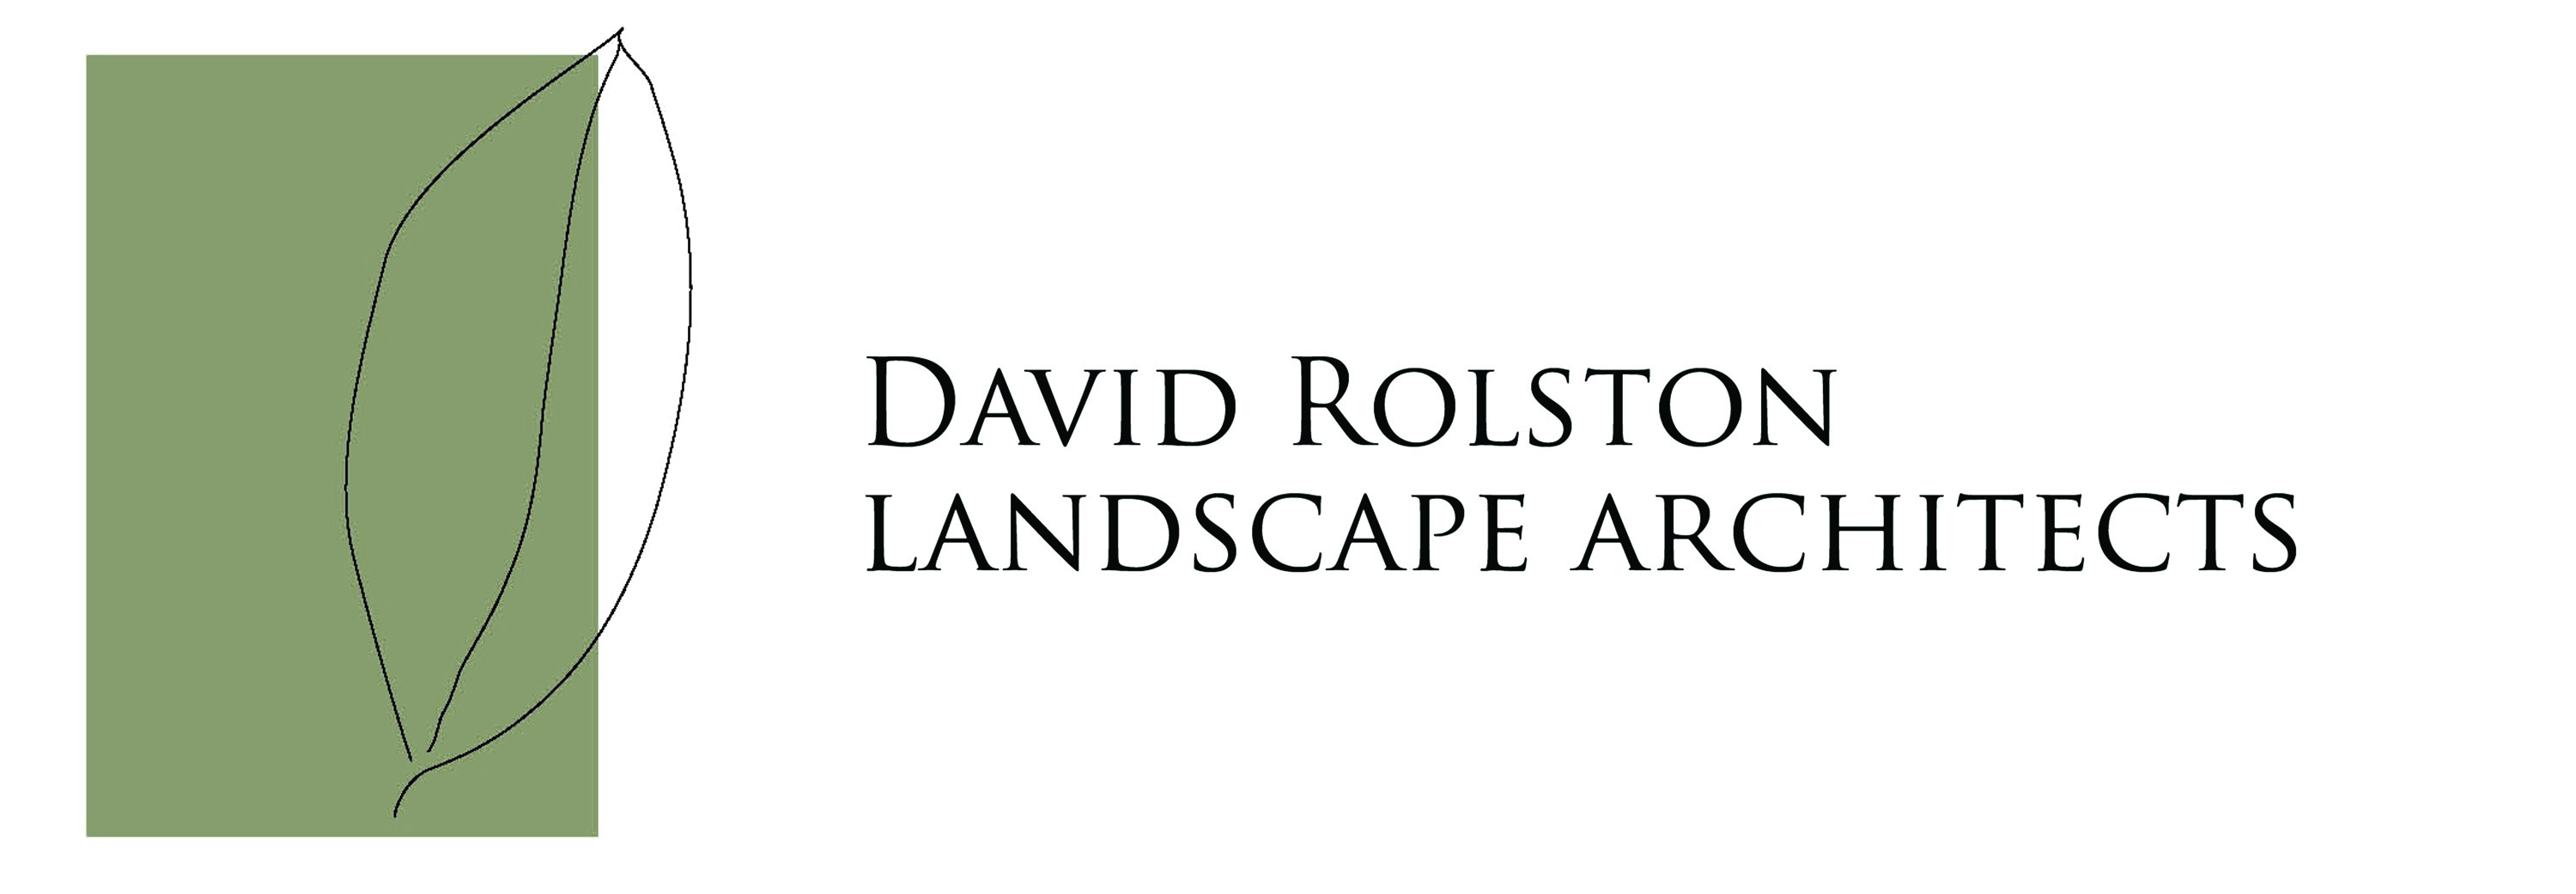 Tour of Homes - David Rolston Landscape Architects logo